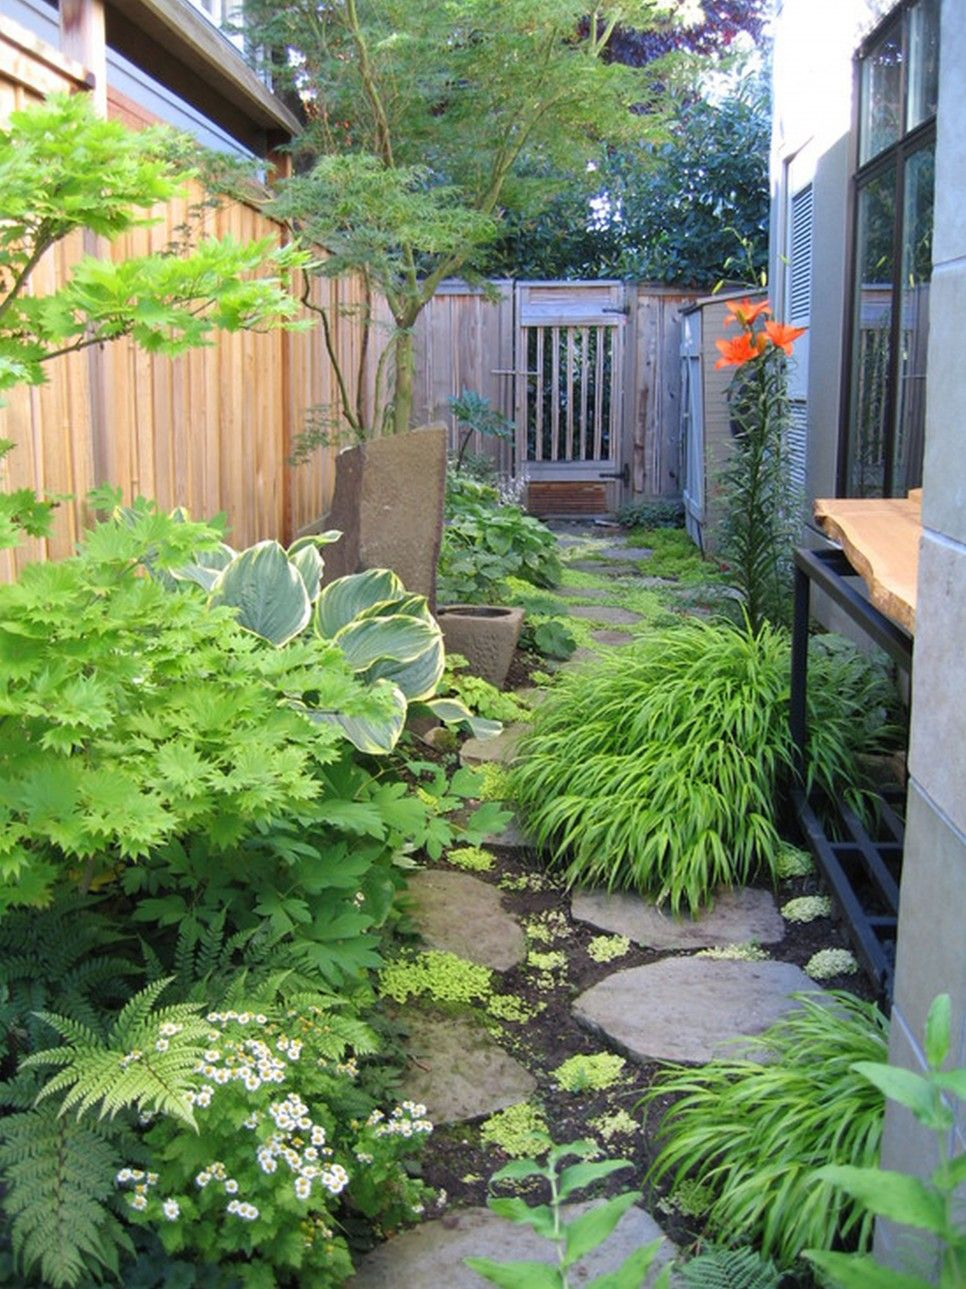 Garden And Patio Narrow Side Yard Garden House Design With Vegetable Garden Plants And Stone Footpat Side Yard Landscaping Backyard Garden Beautiful Backyards Backyard garden house plans